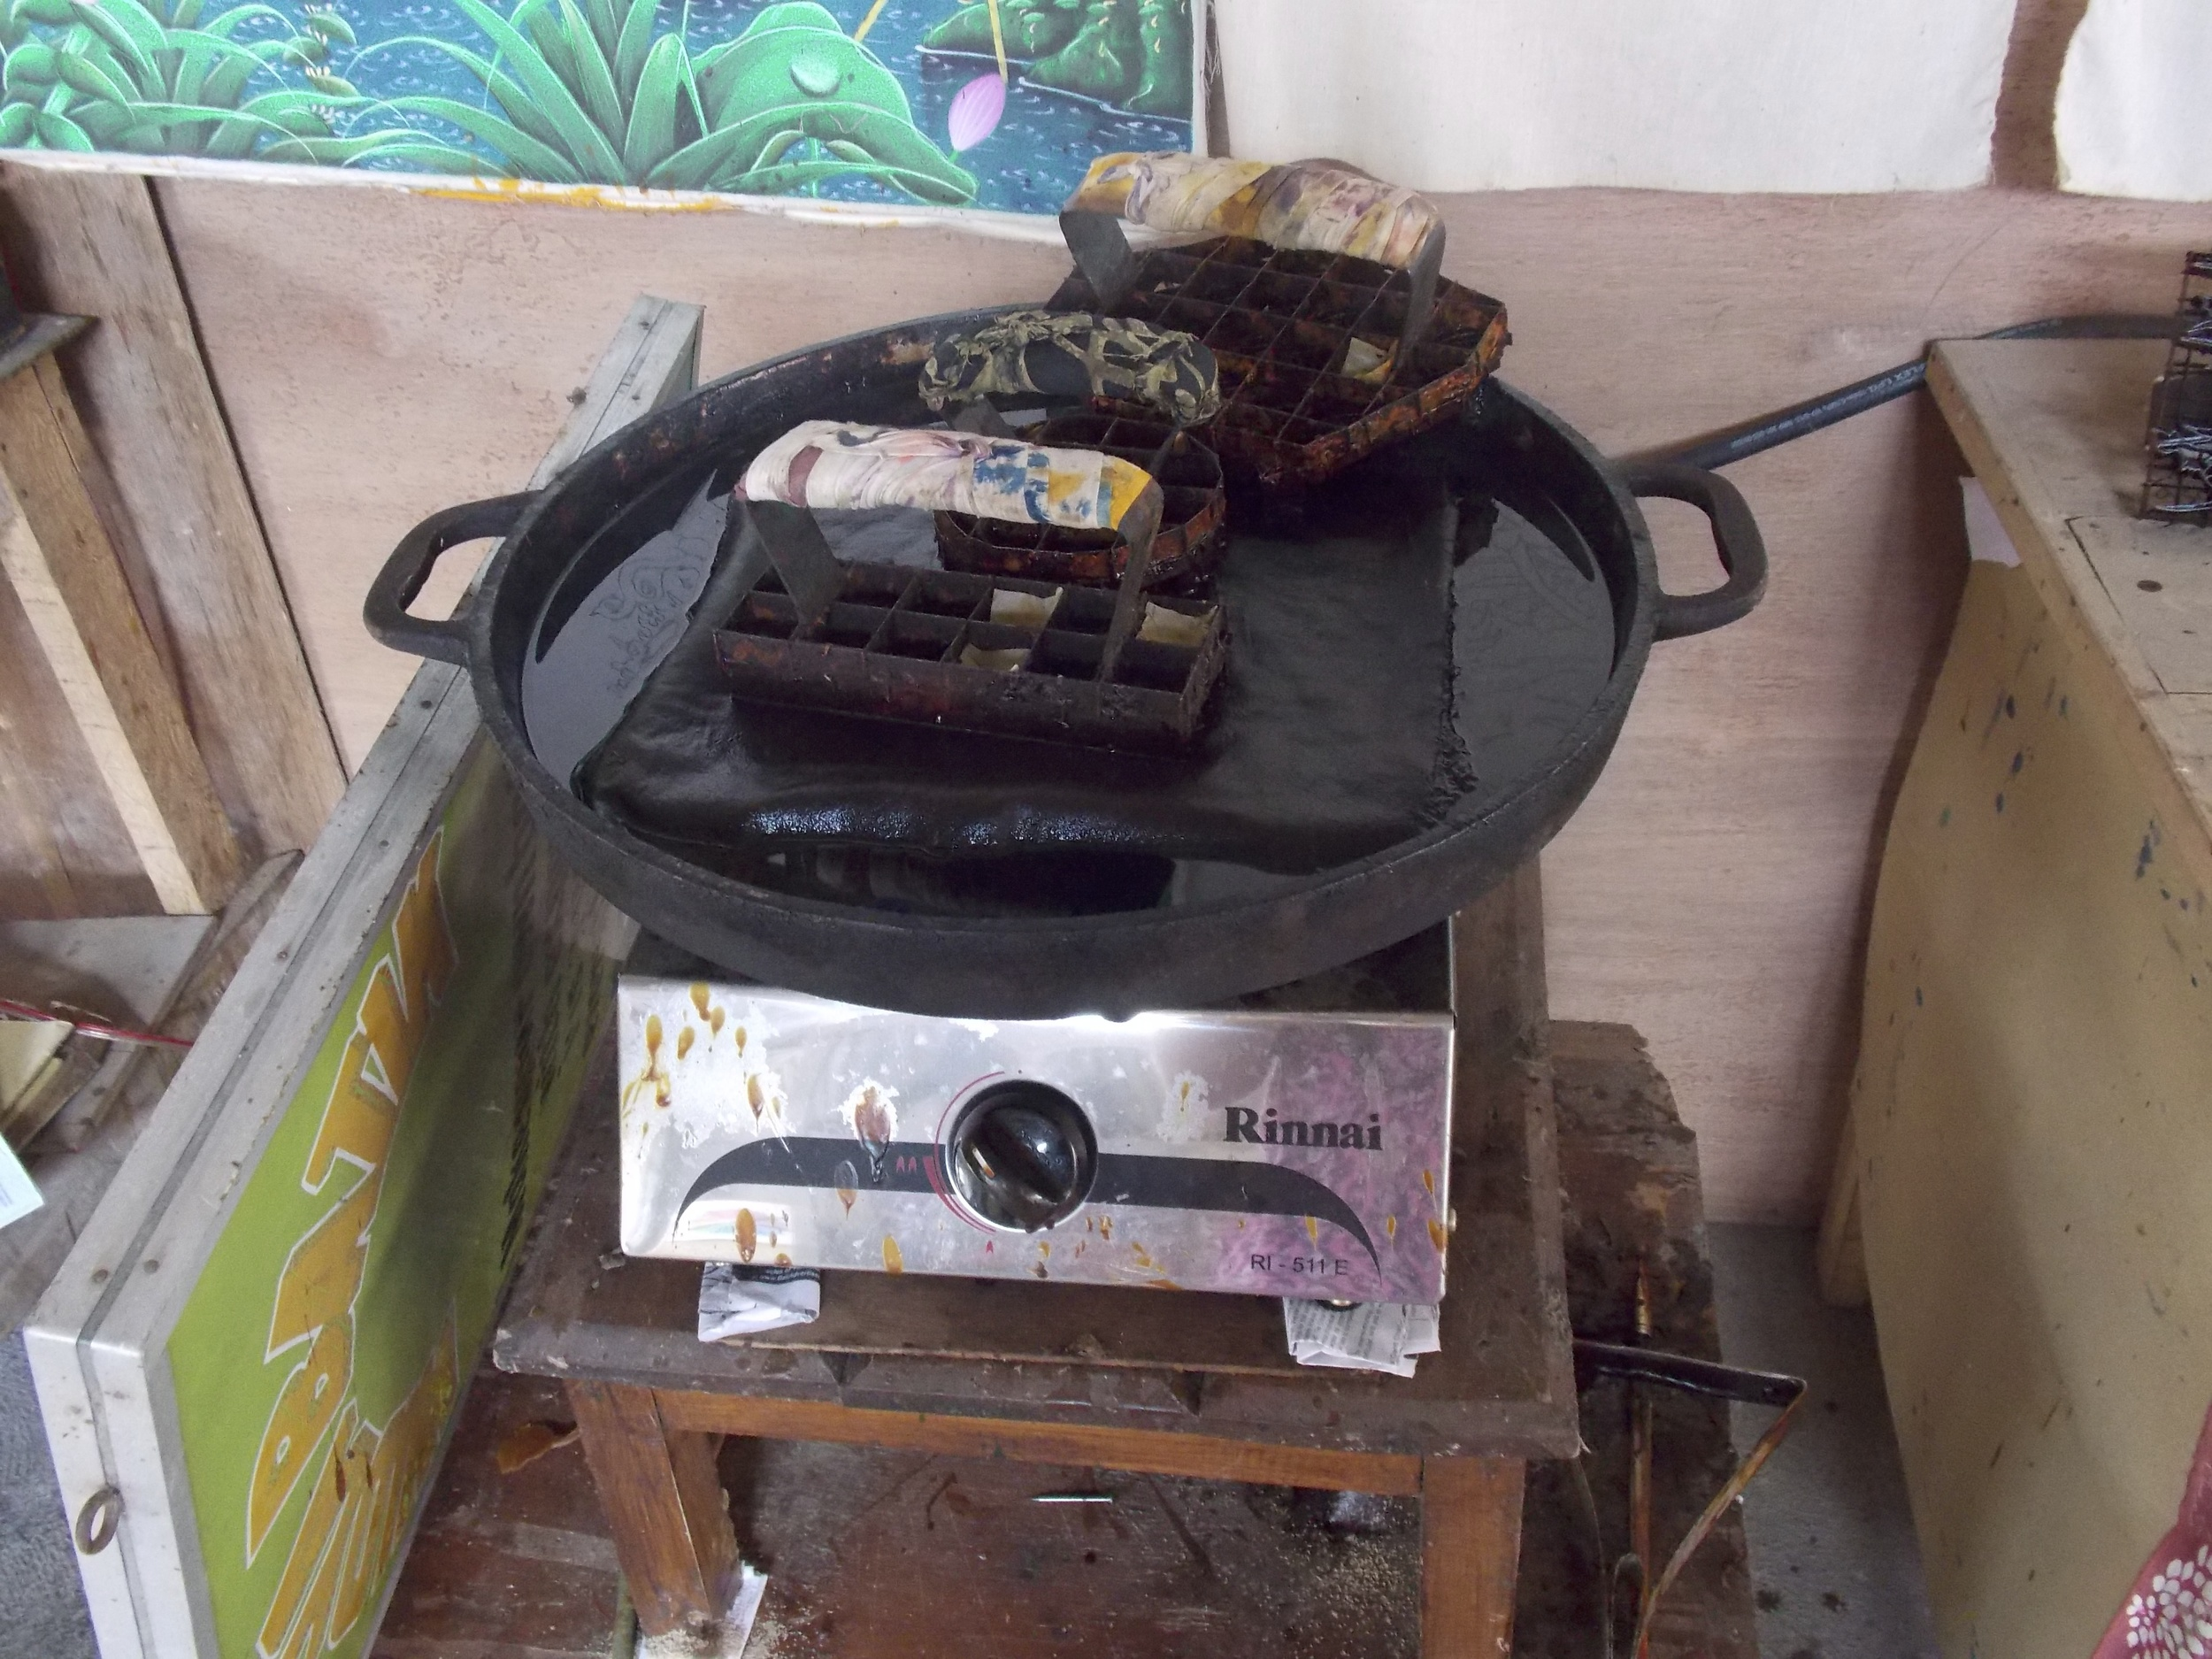 Hot Wax and Stamps for Batik